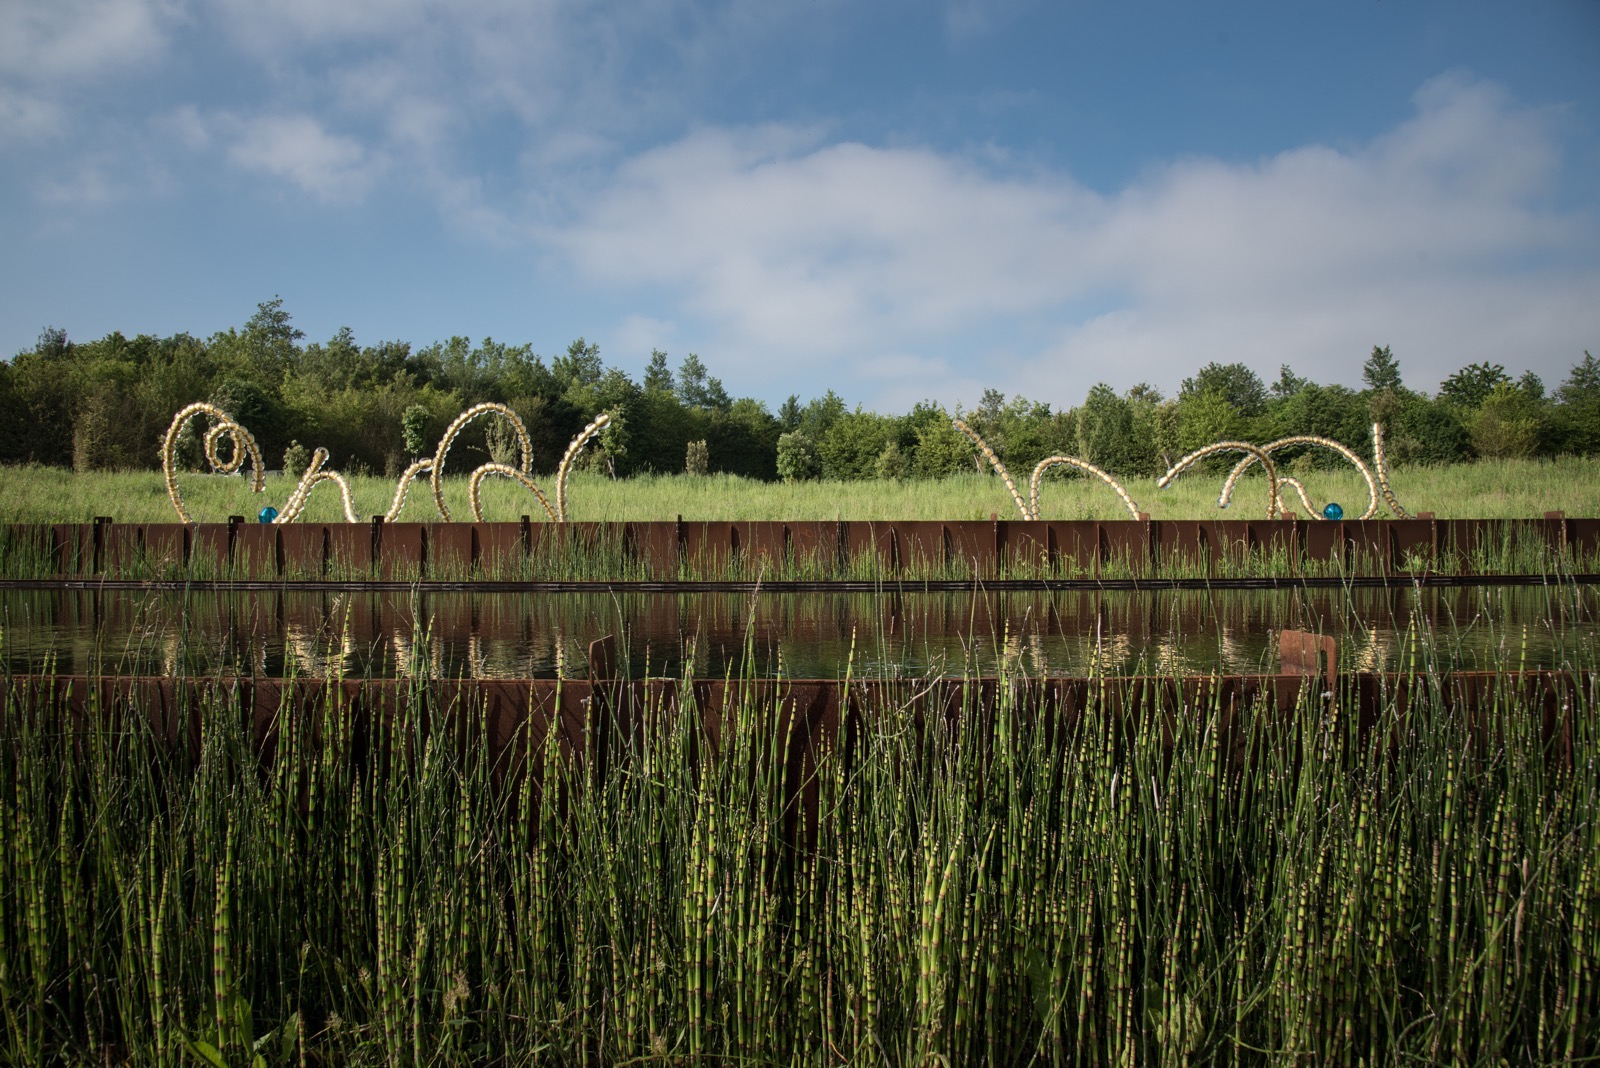 Bamboo breaking quietly into a view as designed by famed landscape architect Louis Benech.